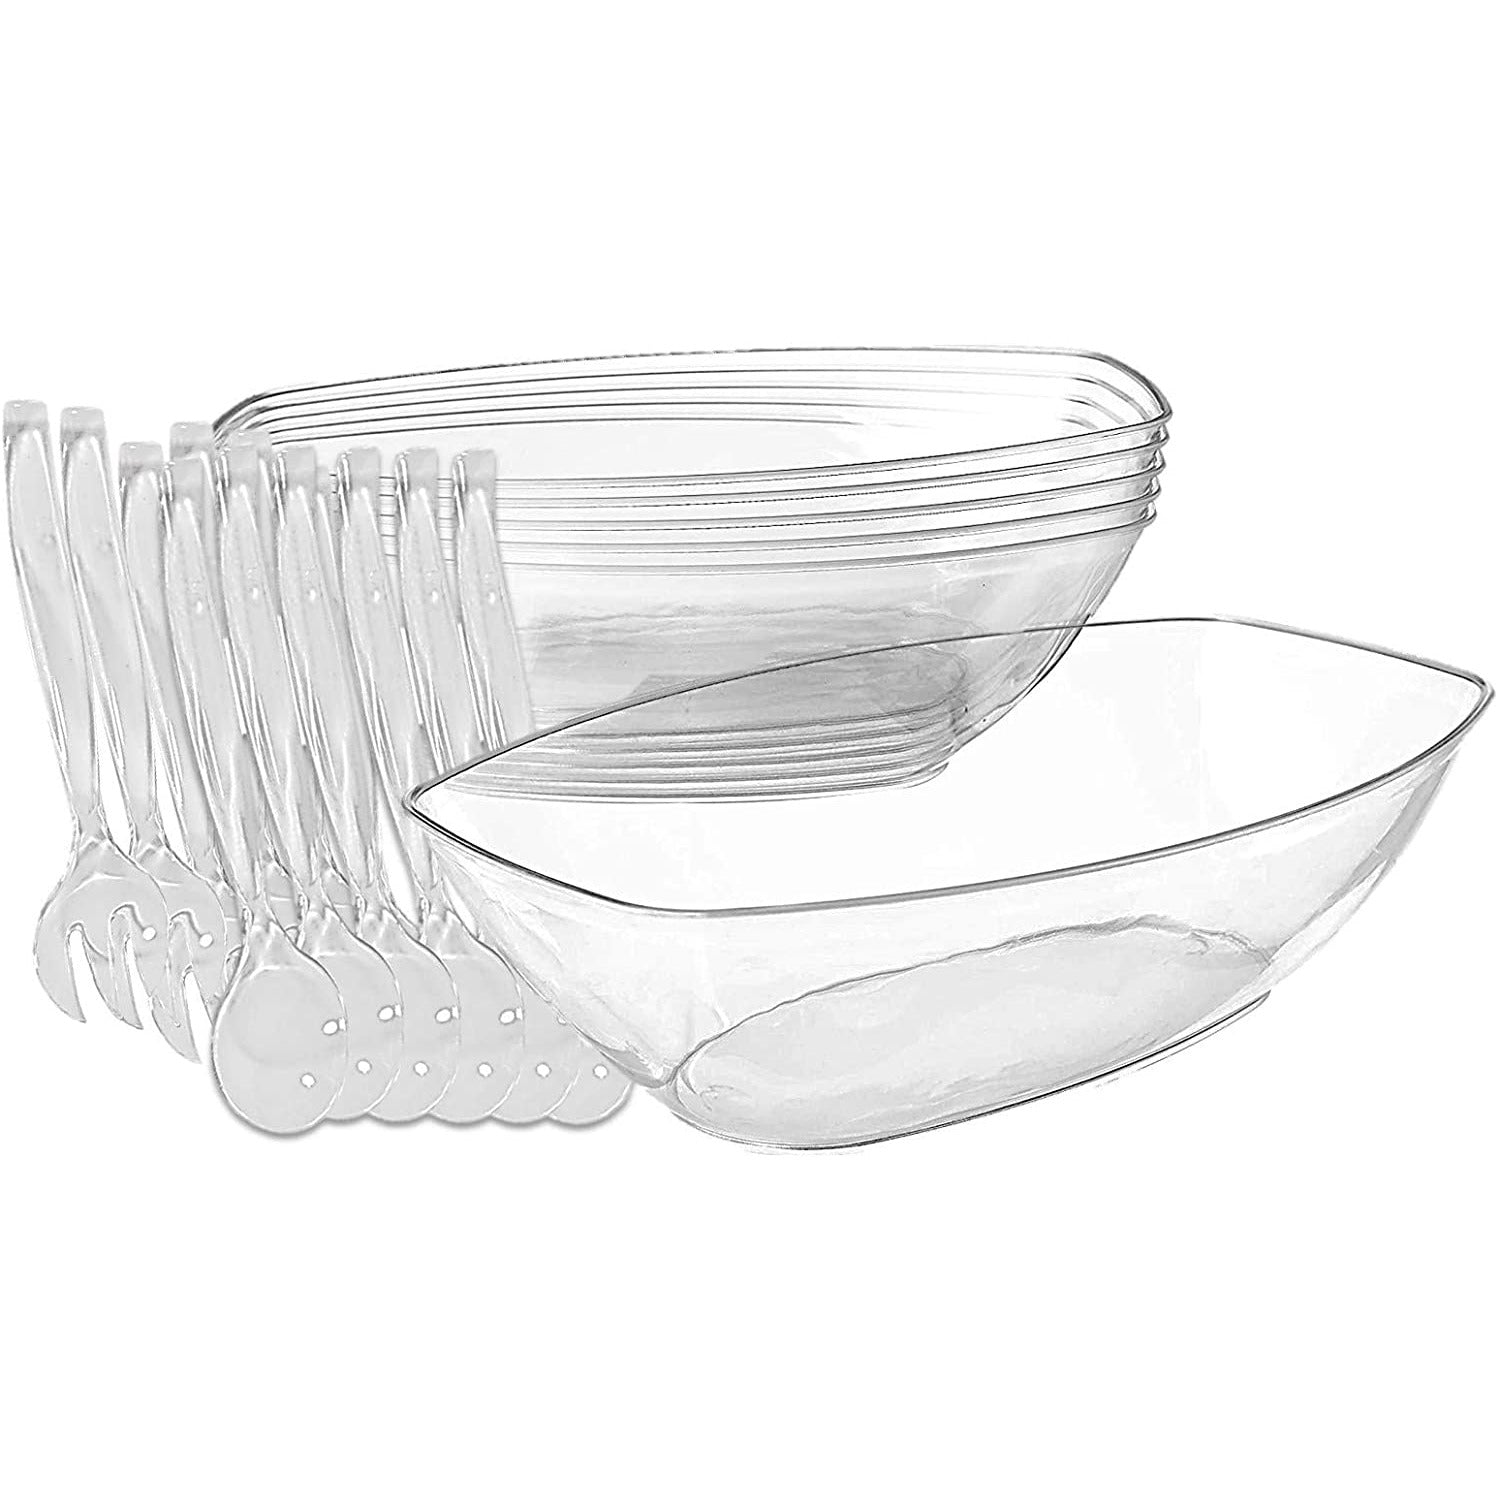 Clear Plastic Serving Bowls - 6 Count, With 6 Disposable Plastic Serving Fork And 6 Plastic Serving Spoons